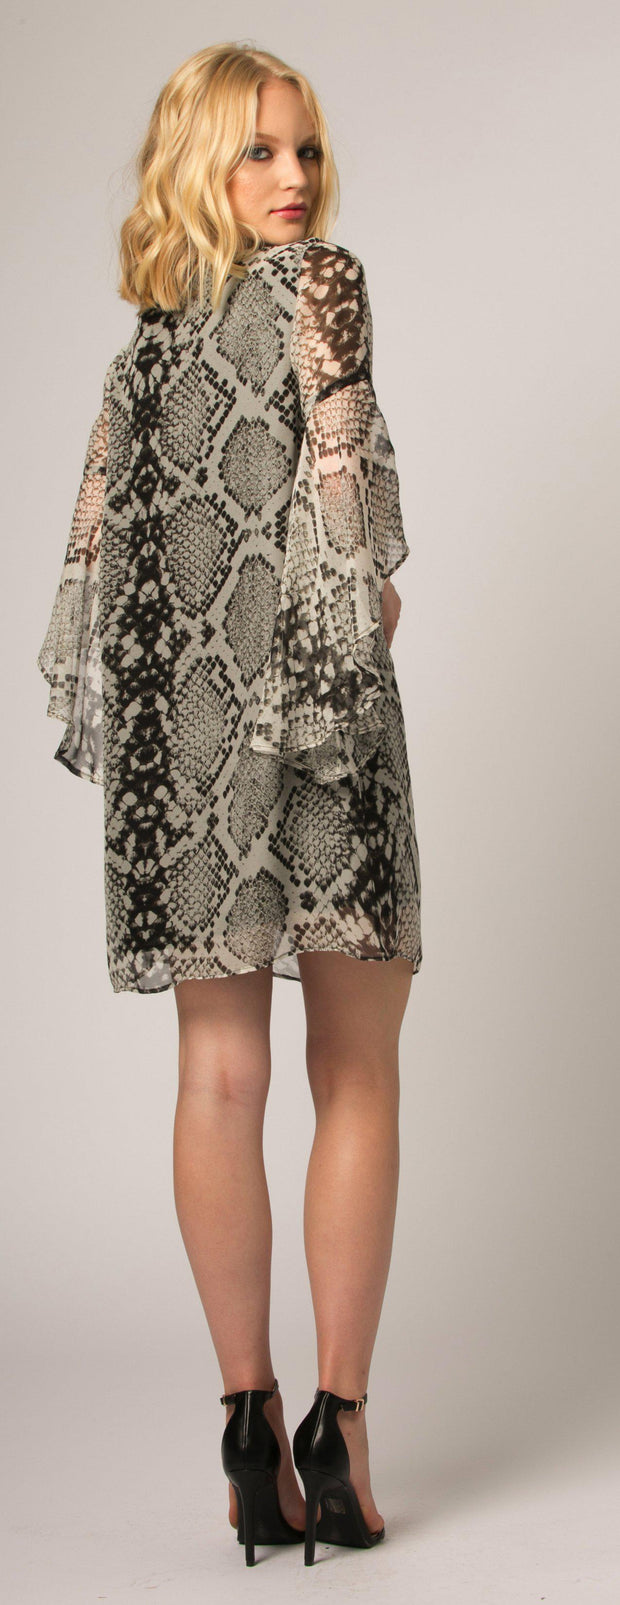 Brown Snakeskin Silk Shift Dress by Lavender Brown - 2